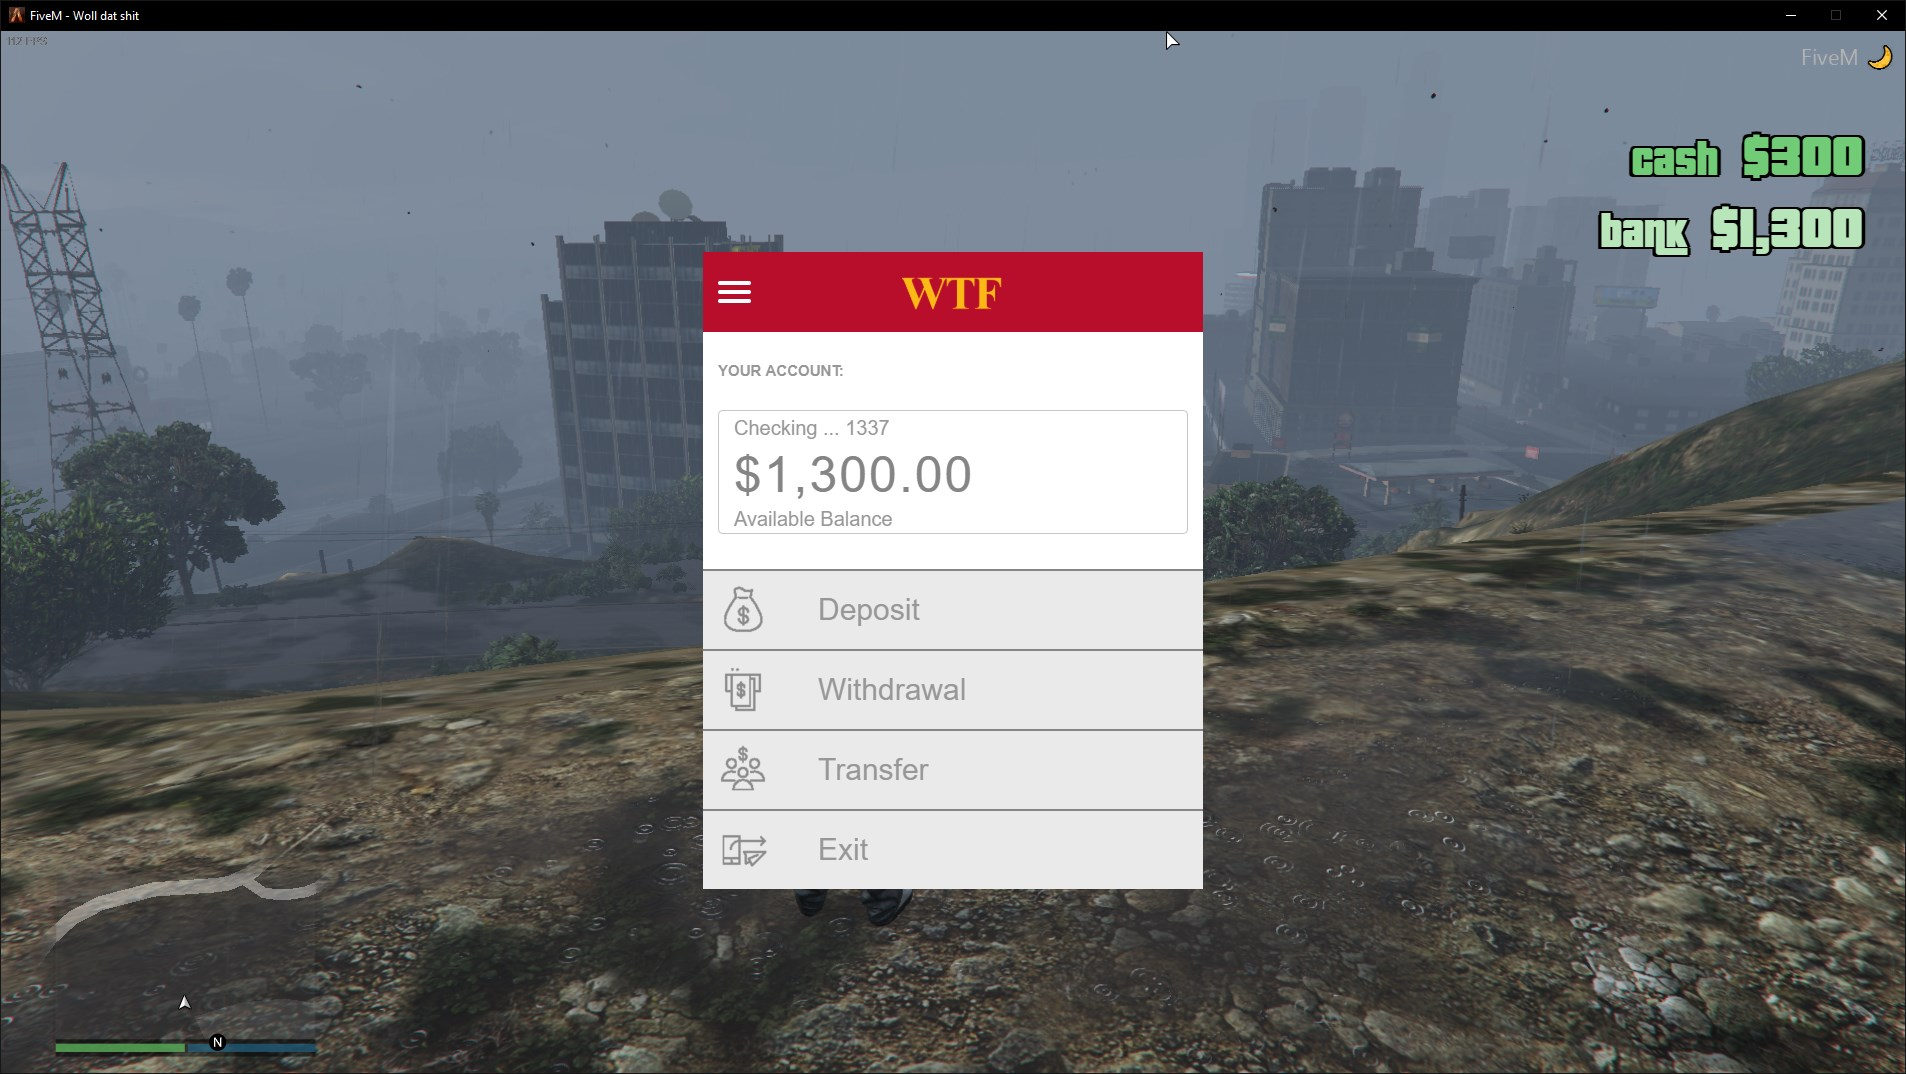 GitHub - wtf-fivem-mods/wtf_banking: WIP: FiveM banking and money